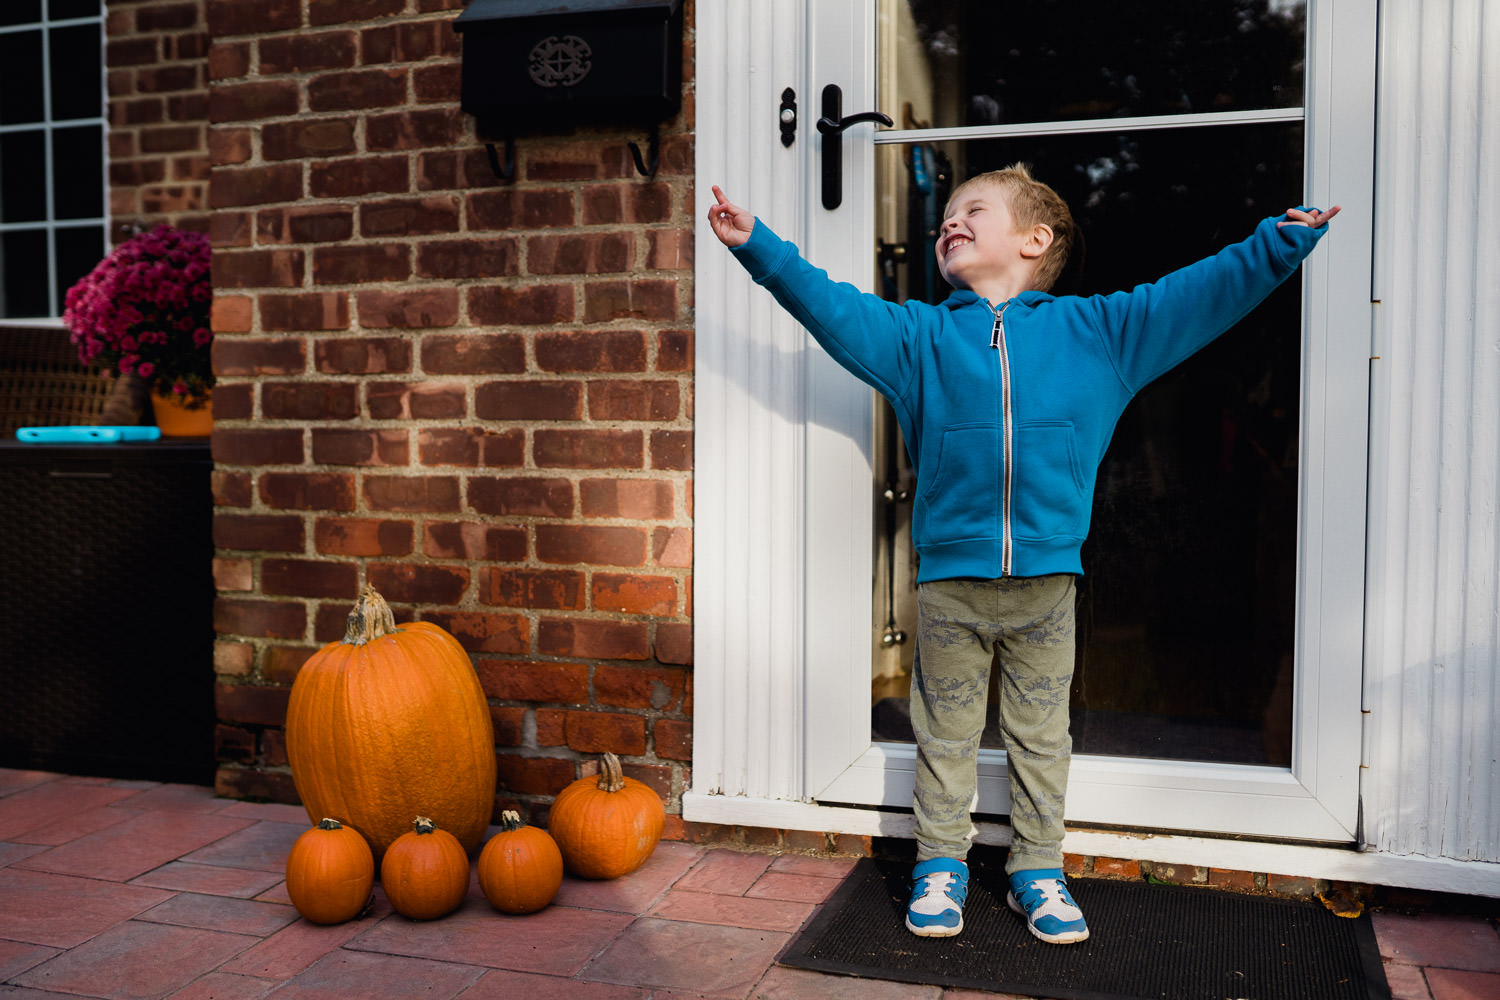 A little boy cheers on his porch.